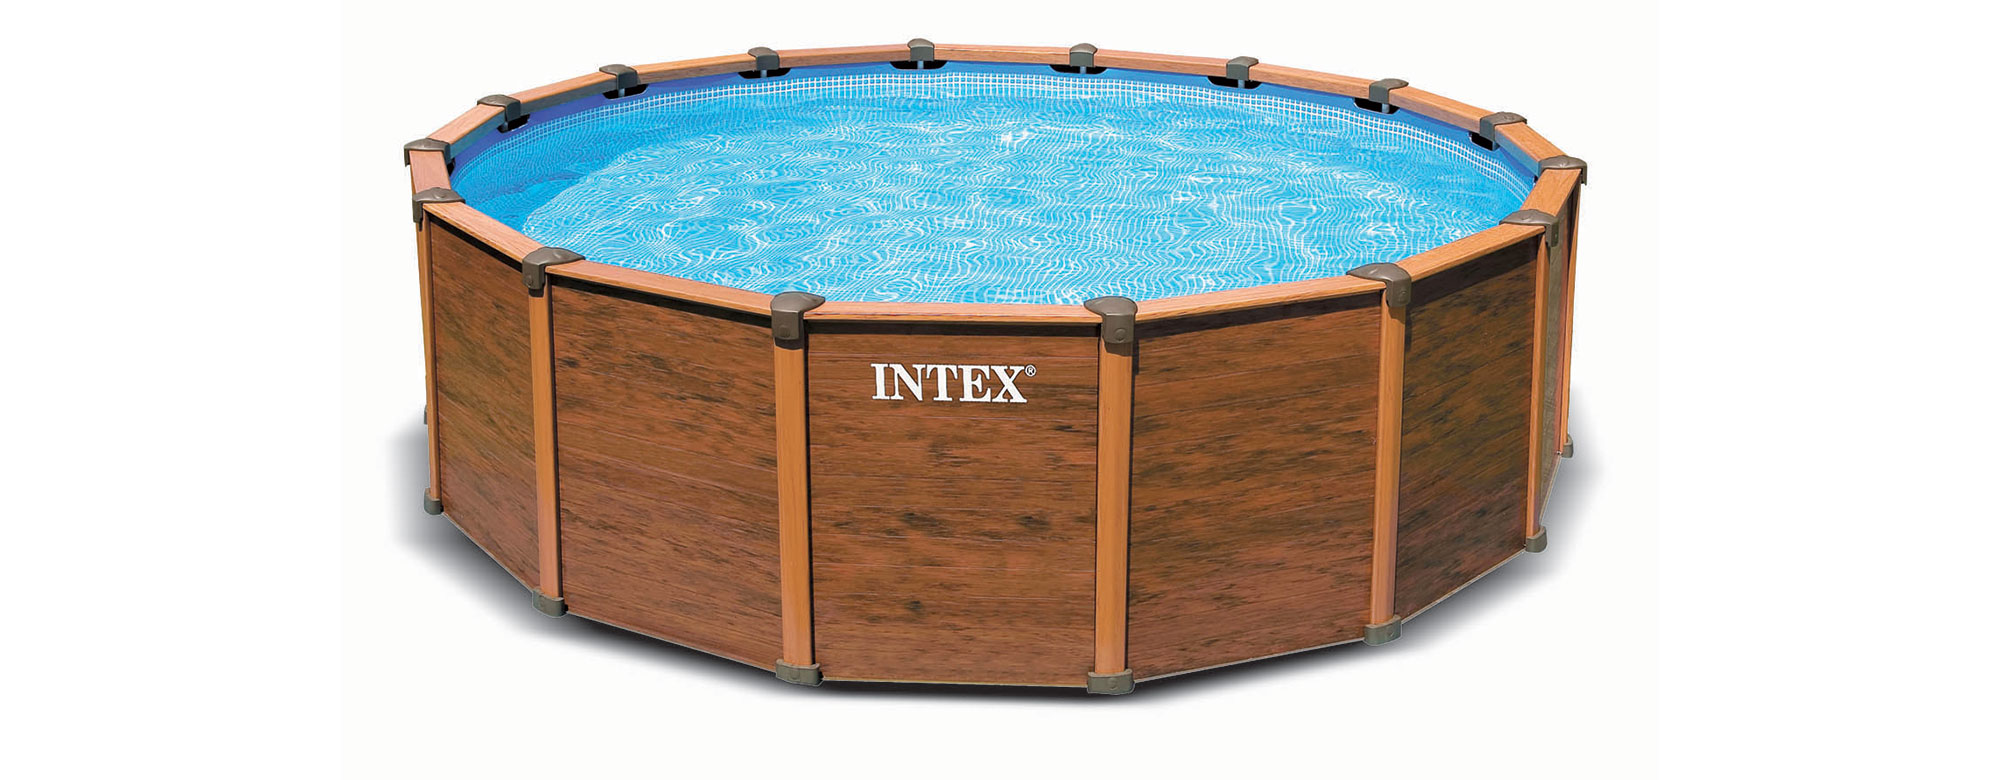 Installer ma piscine sequoia Intex